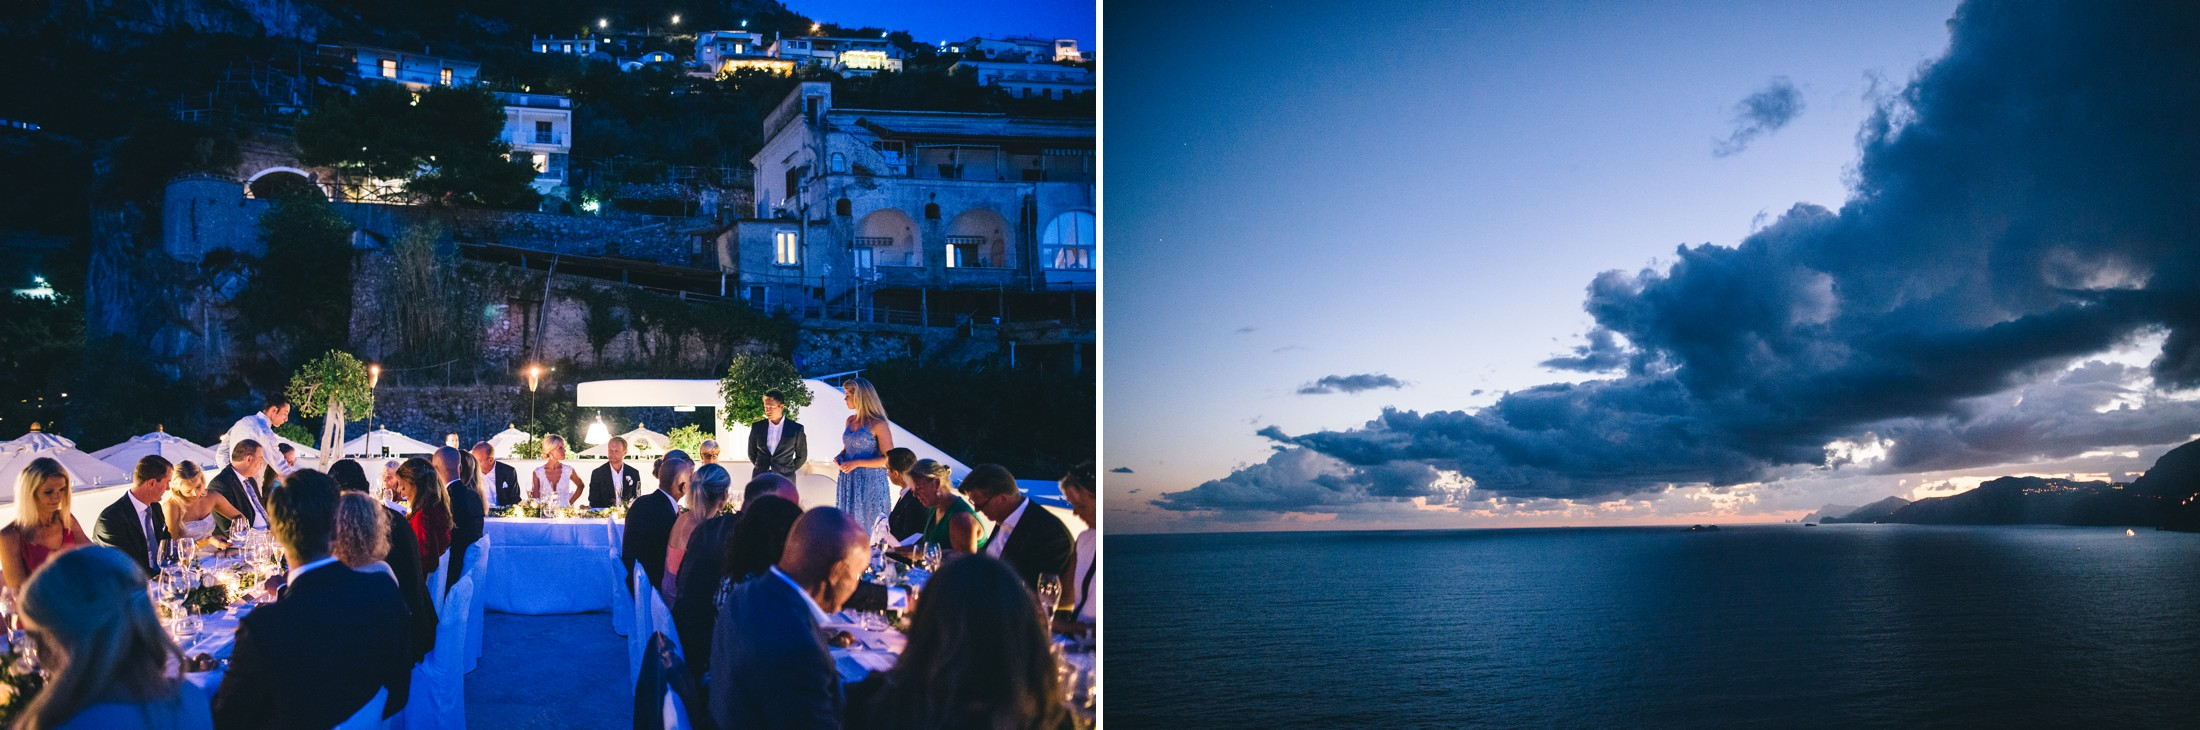 collage landscape with the sea and a moment from the wedding dinner on the terrace of casa angelina in praiano